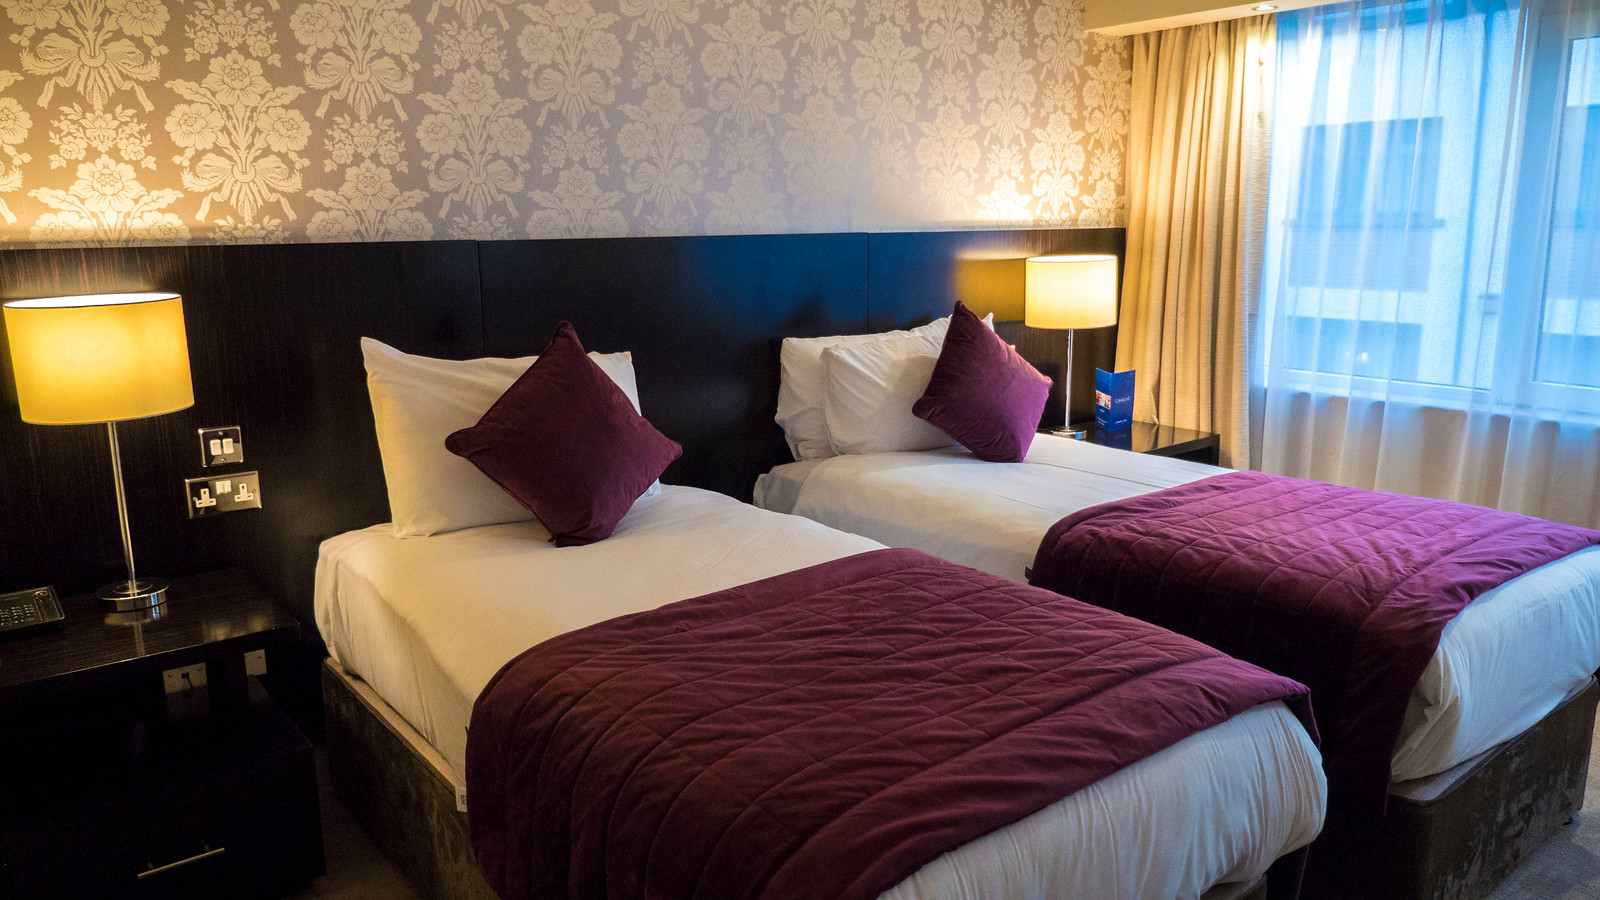 Where to stay in Galway - The Connacht Hotel - Galway accommodation